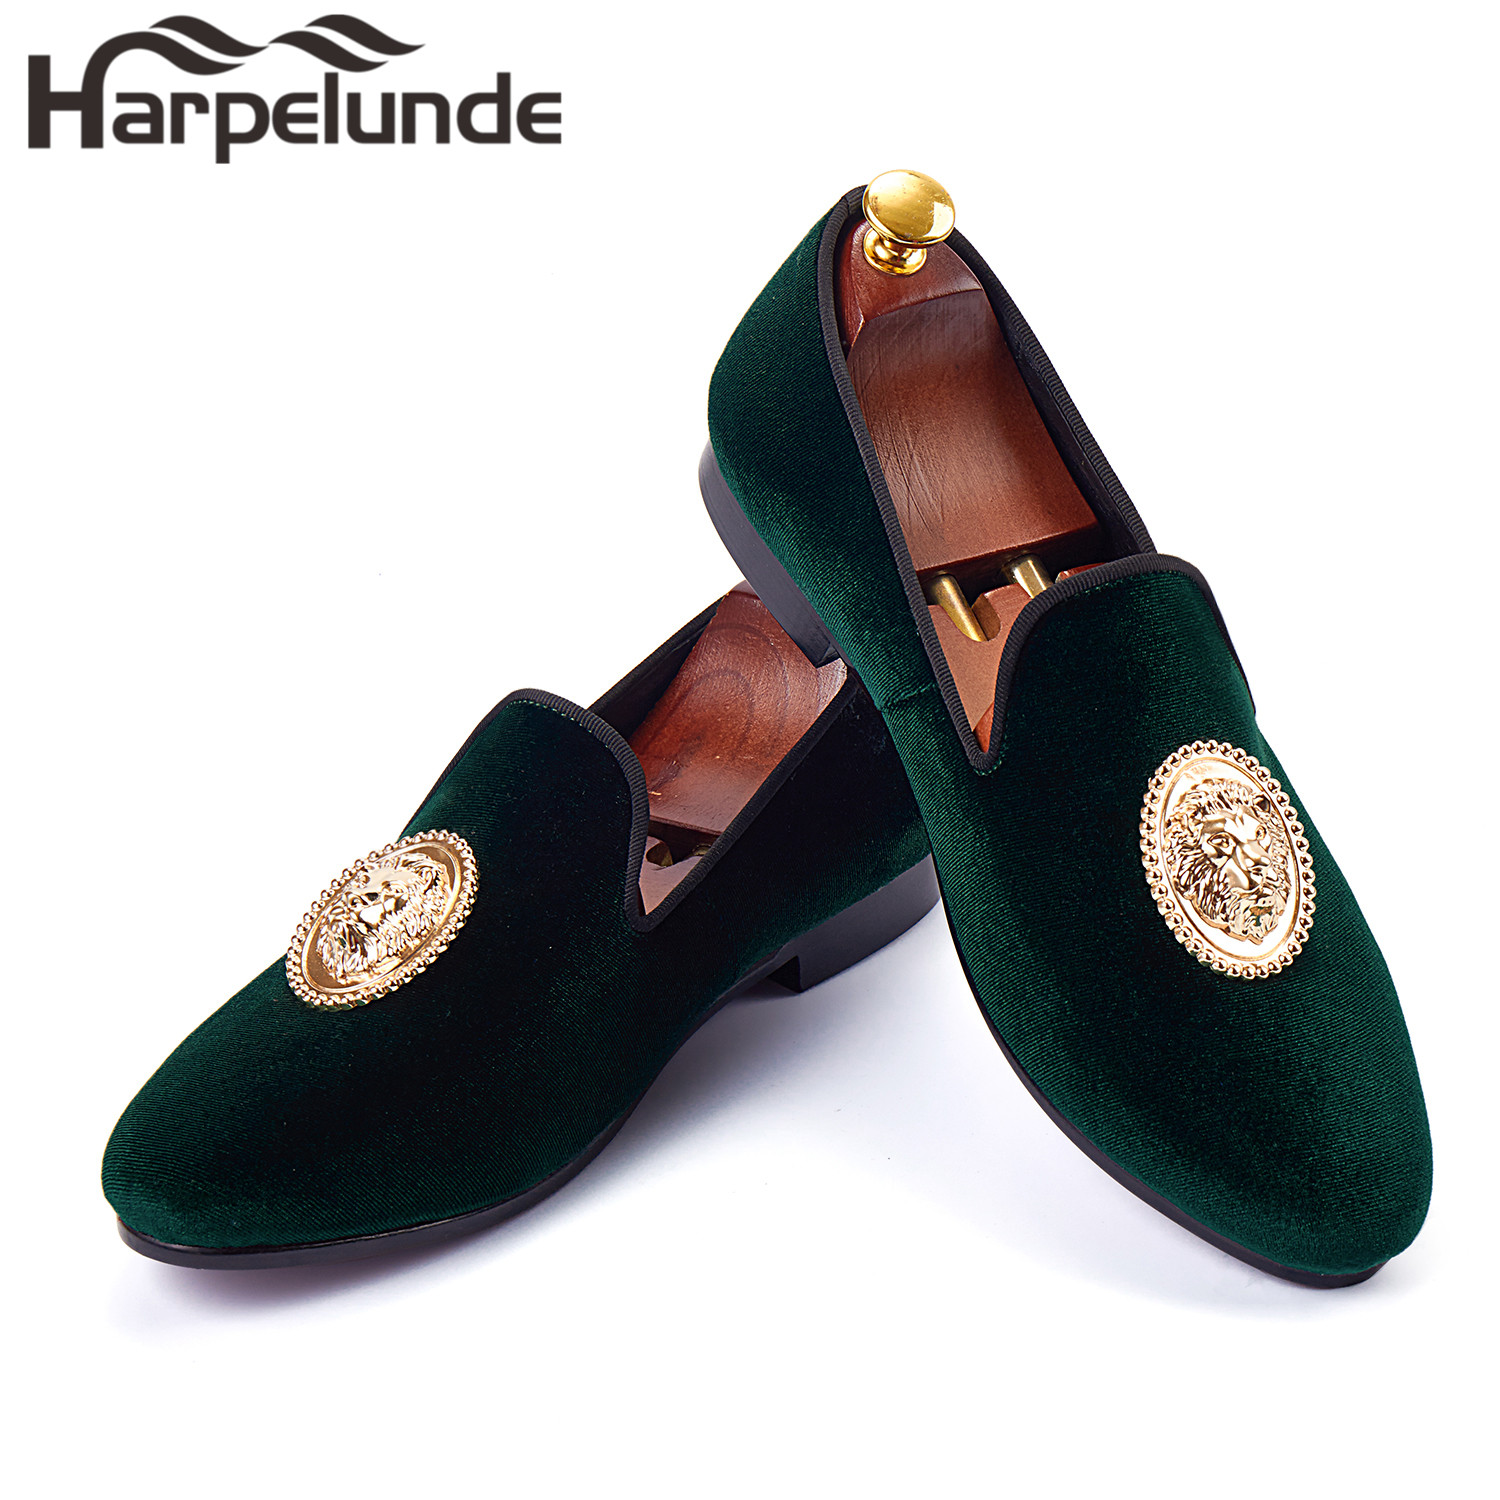 Здесь продается  Harpelunde Animal Buckle Men Formal Shoes Green Velvet Loafer Shoes Handmade Smoking Slippers Size 6-14  Обувь